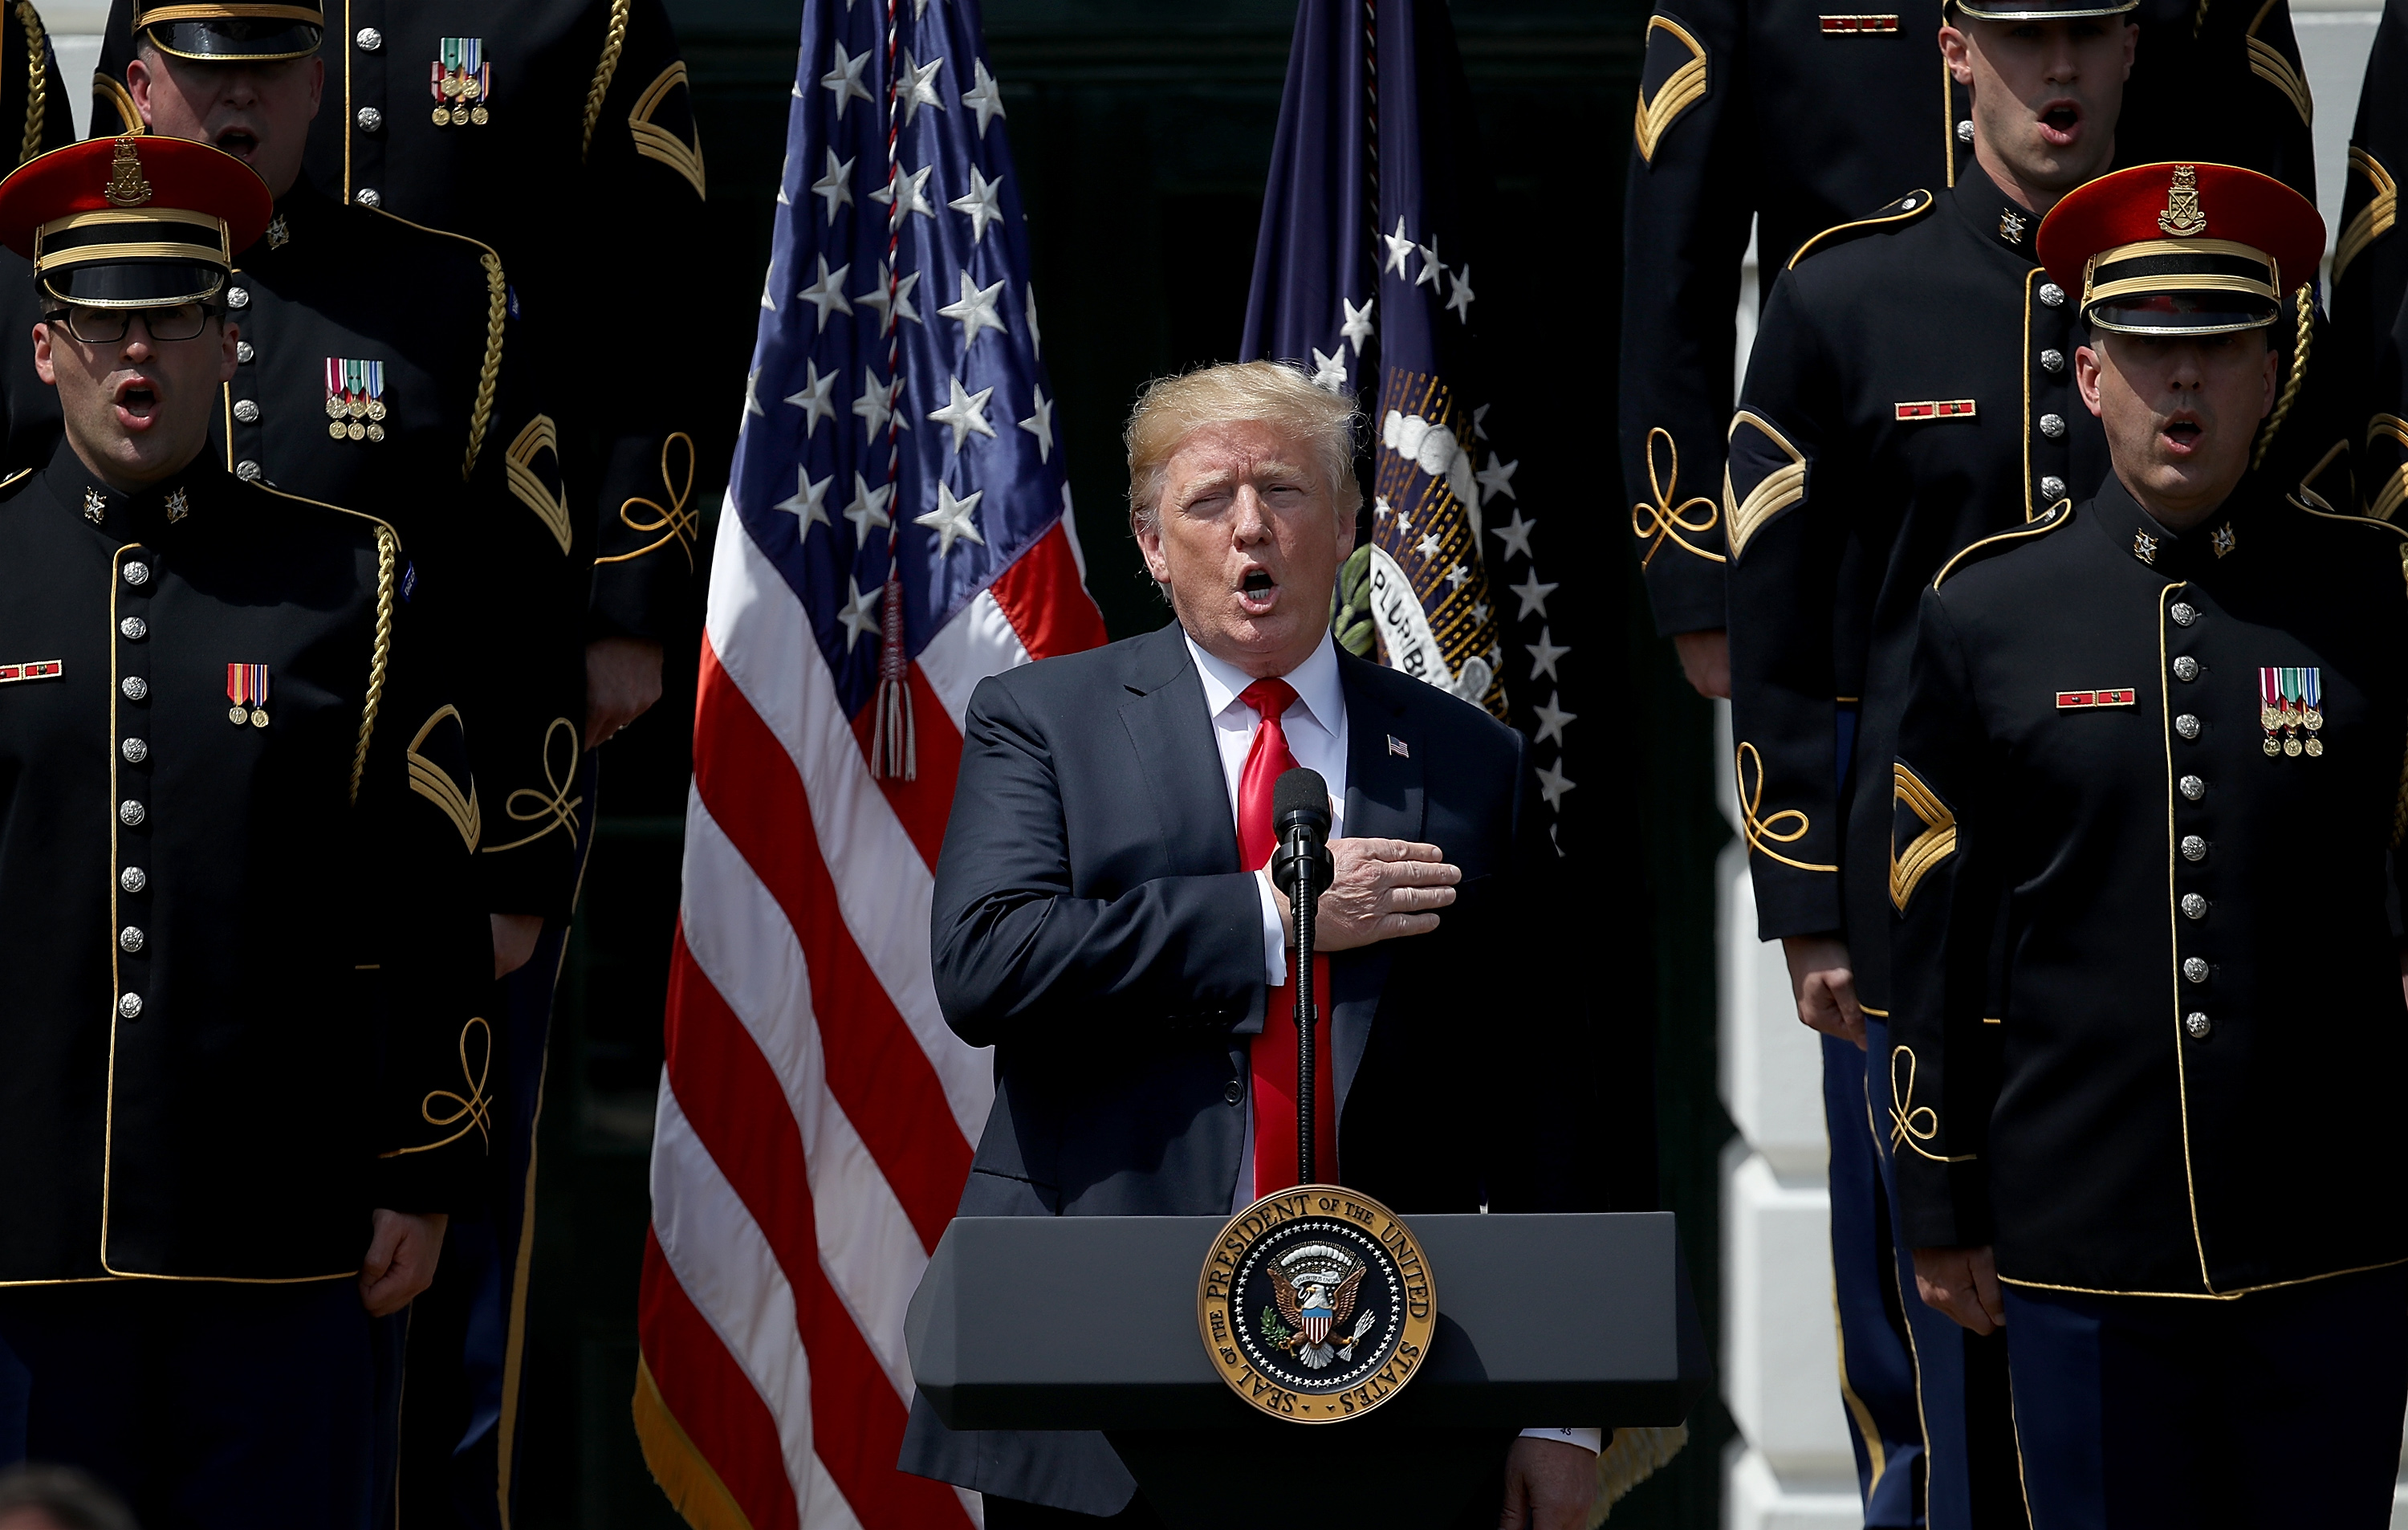 Trump sings the national anthem with a US Army chorus during a 'Celebration of America' event on the south lawn of the White House June 5, 2018.